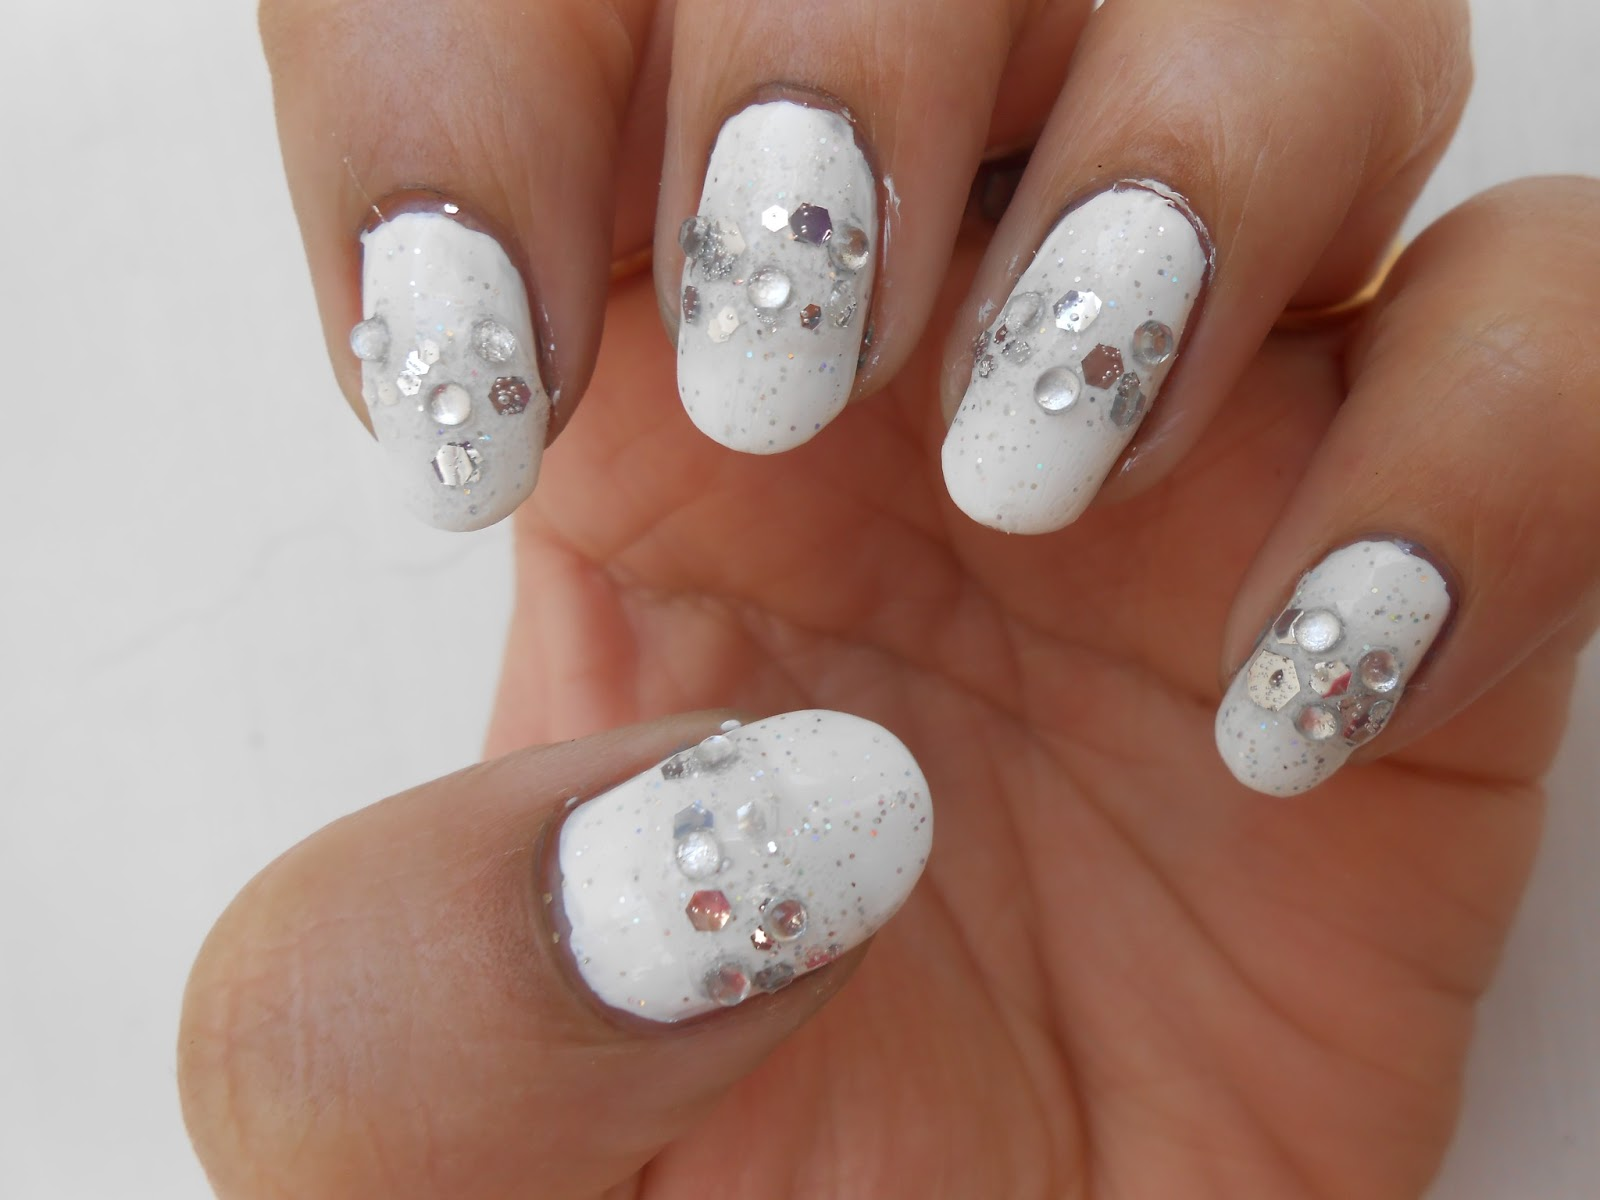 Cute nails: Girly Girl Nail Art Challenge Week 2: Gimme That Bling